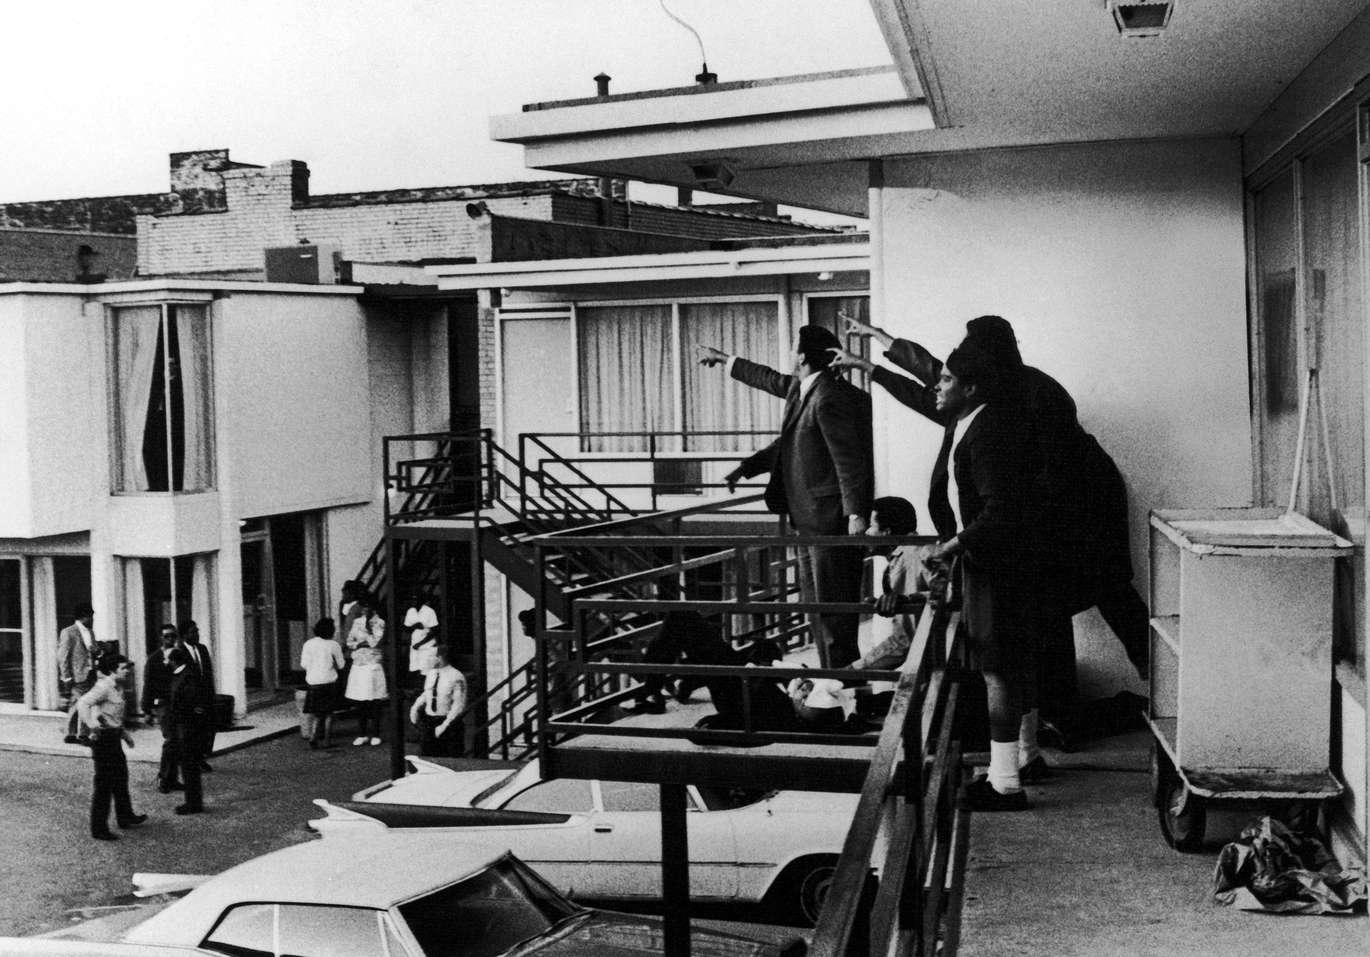 April 4, 2018 marks 50th anniversary of MLK's death